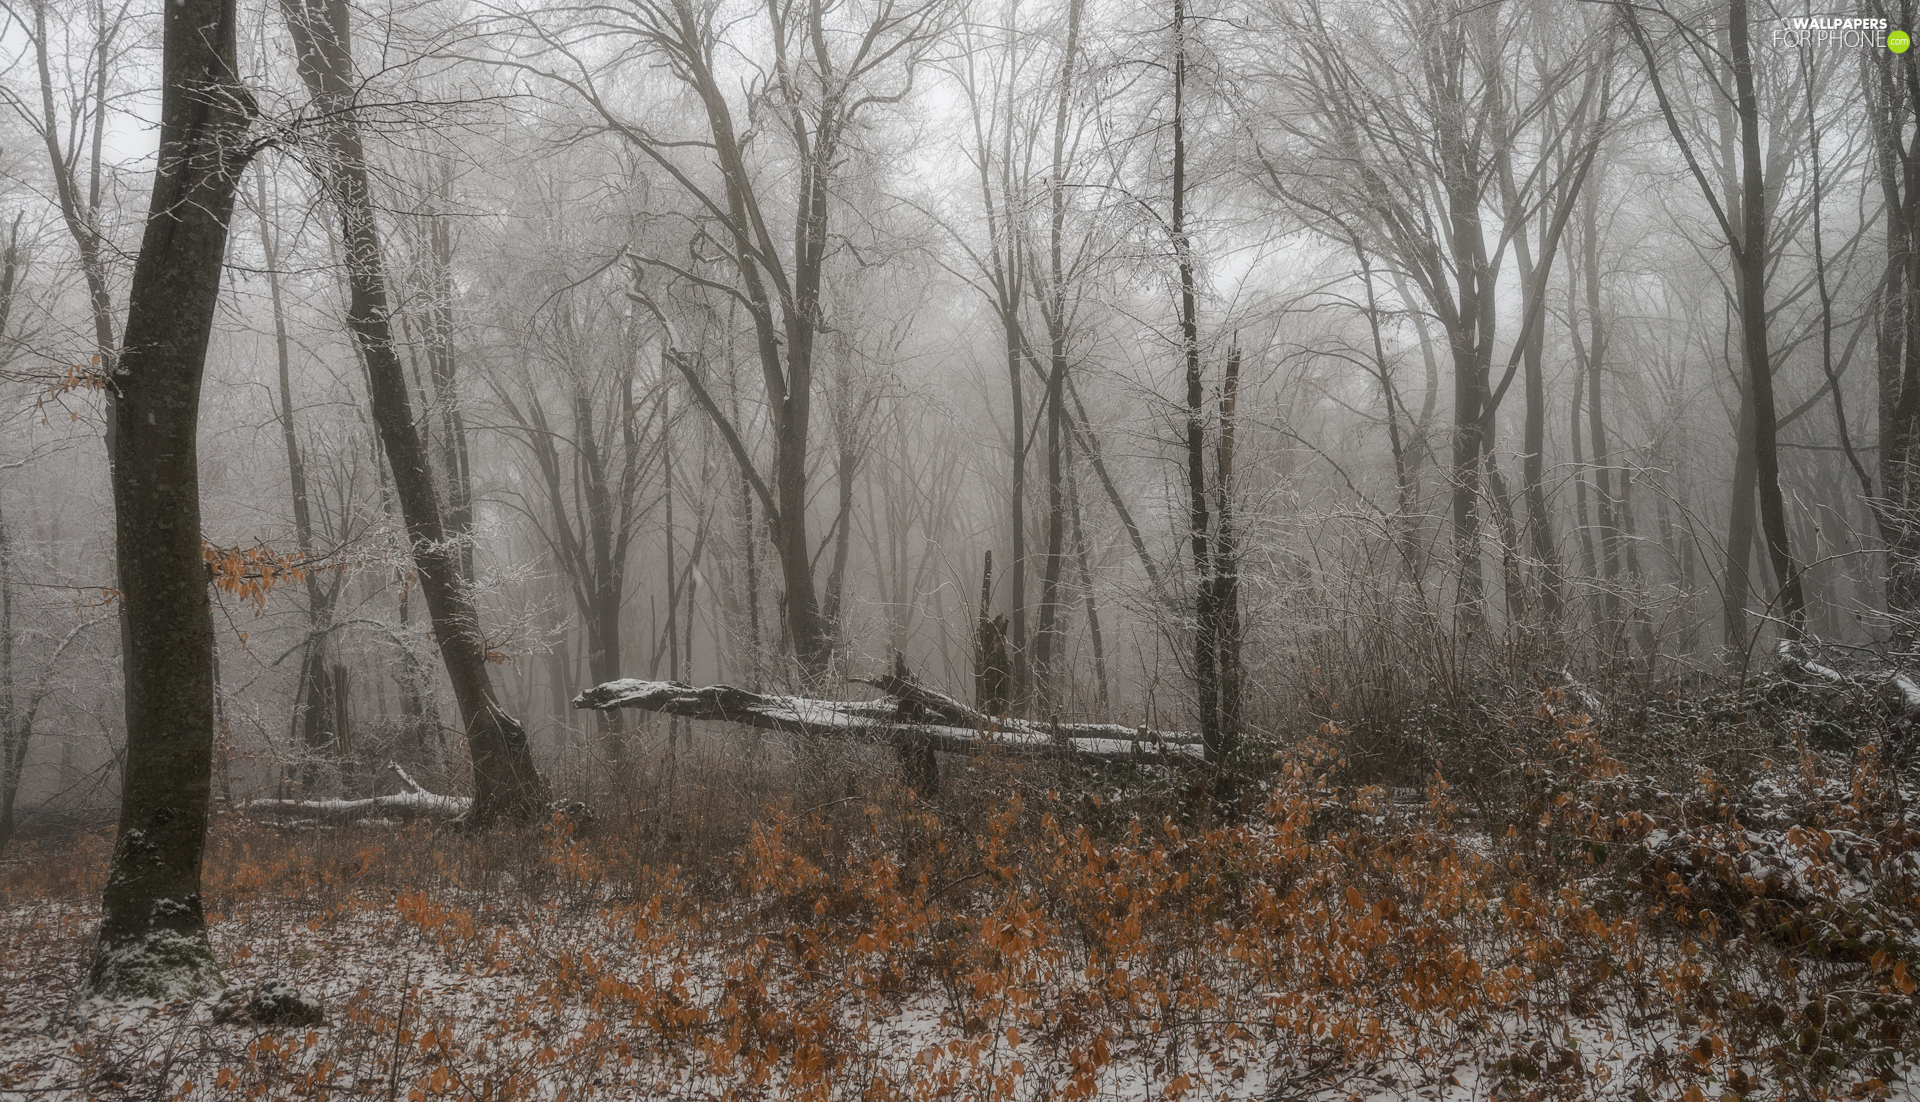 forest, trees, fallen, viewes, winter, Fog, Leaf